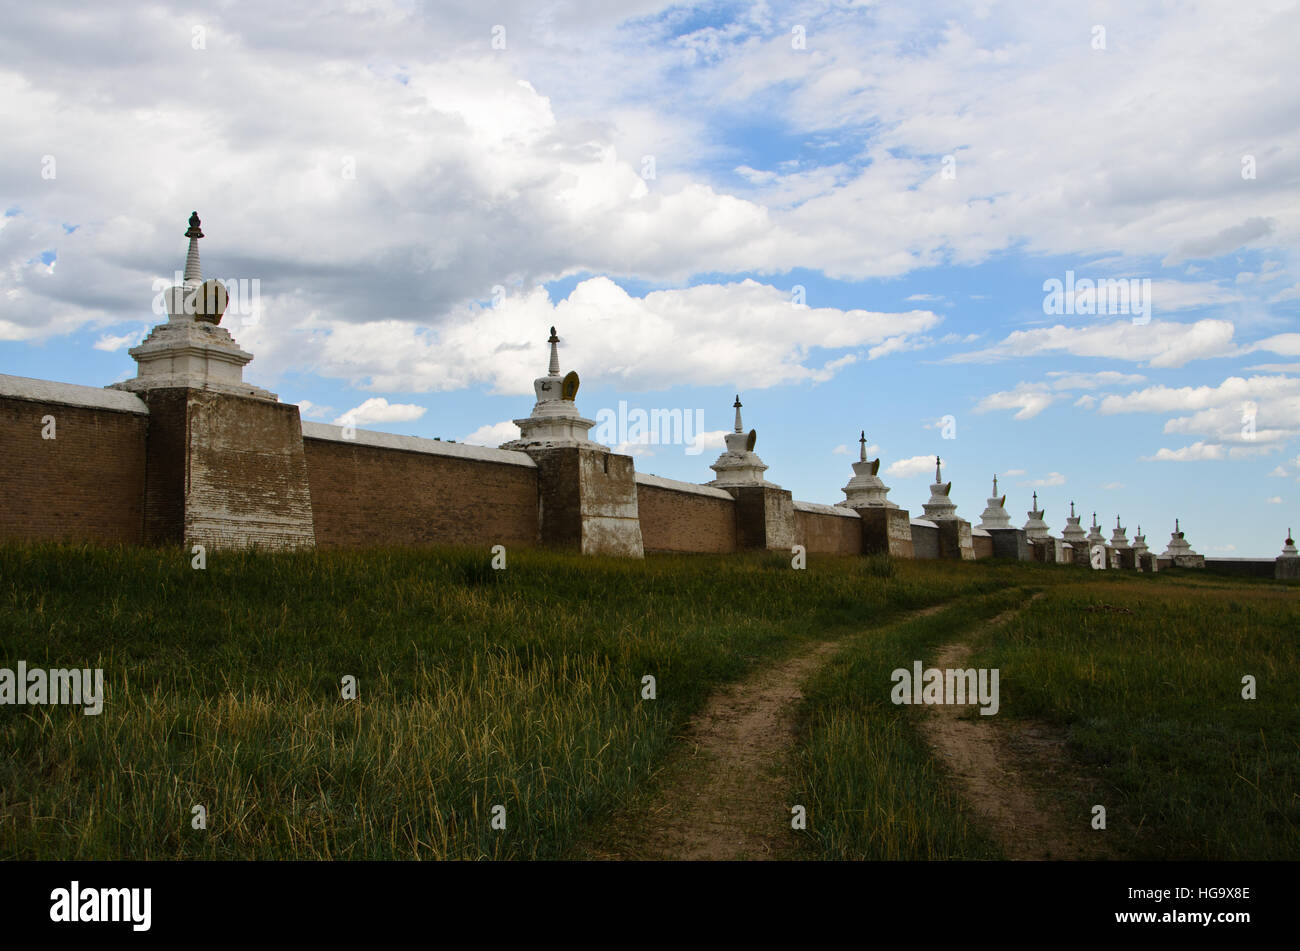 The brick wall topped with 108 pagodas of Erdene Zuu Monastery - Stock Image